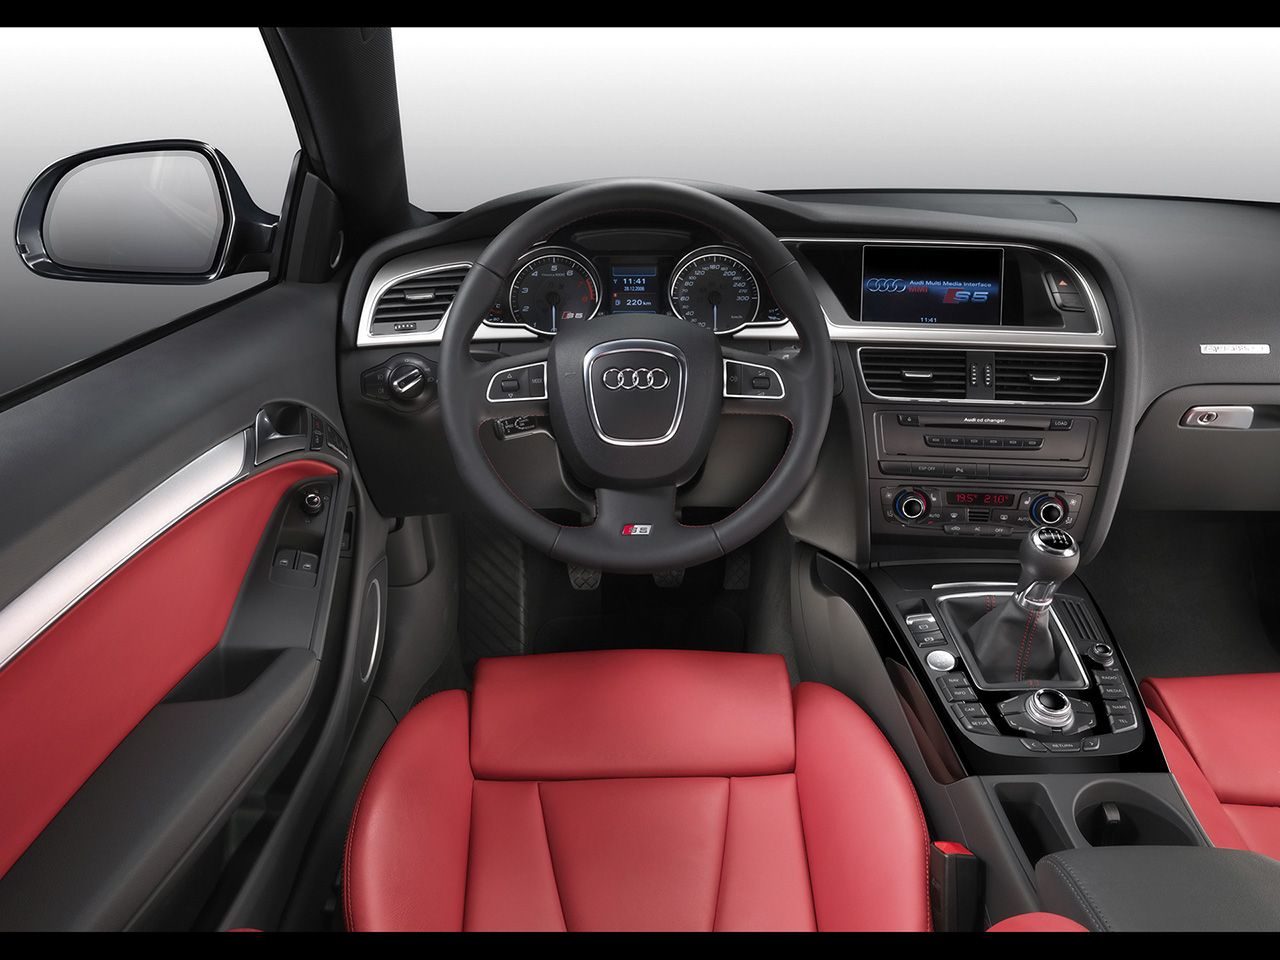 Audi S4 Interior Red Inside So Sexy Missing By Baby Car The